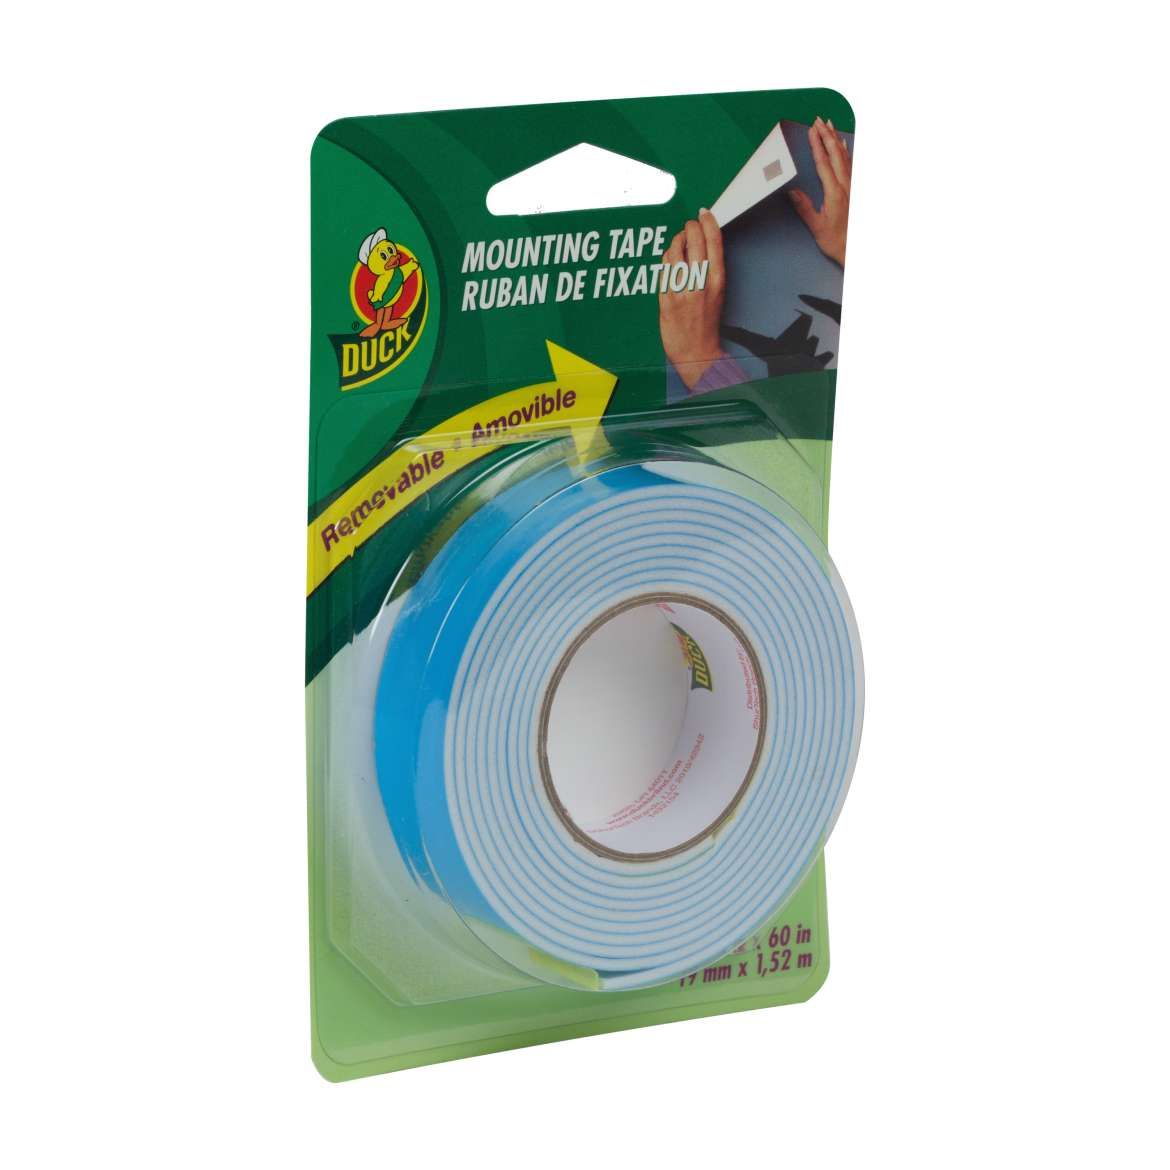 Double Sided Removable Foam Mounting Tape Duck Brand 3 4 X 60